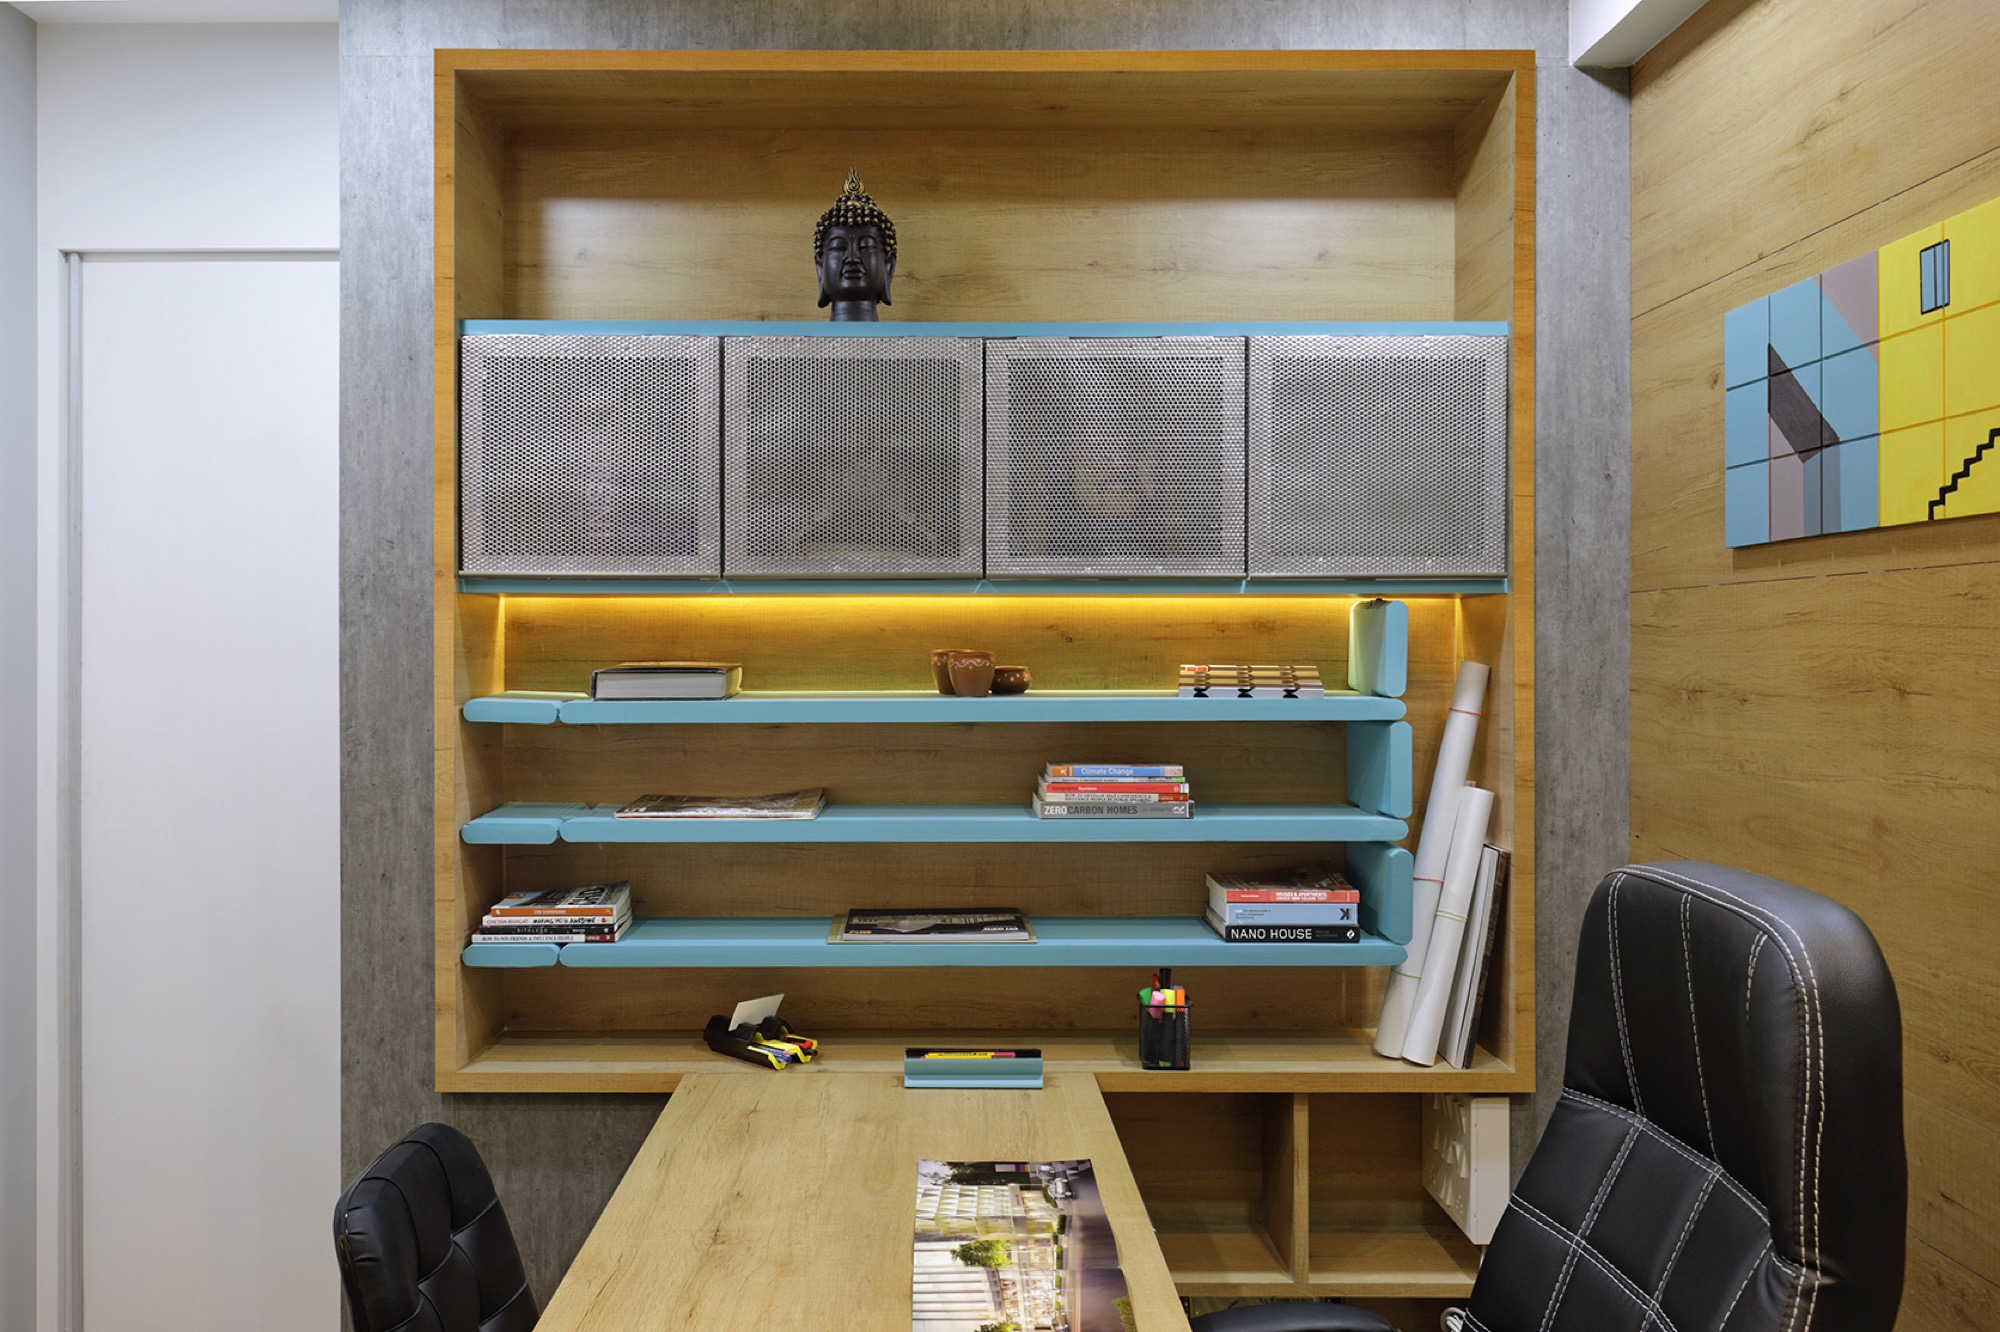 Adaptable furniture that defines the office space, designed by Manoj patel Design Studio 11